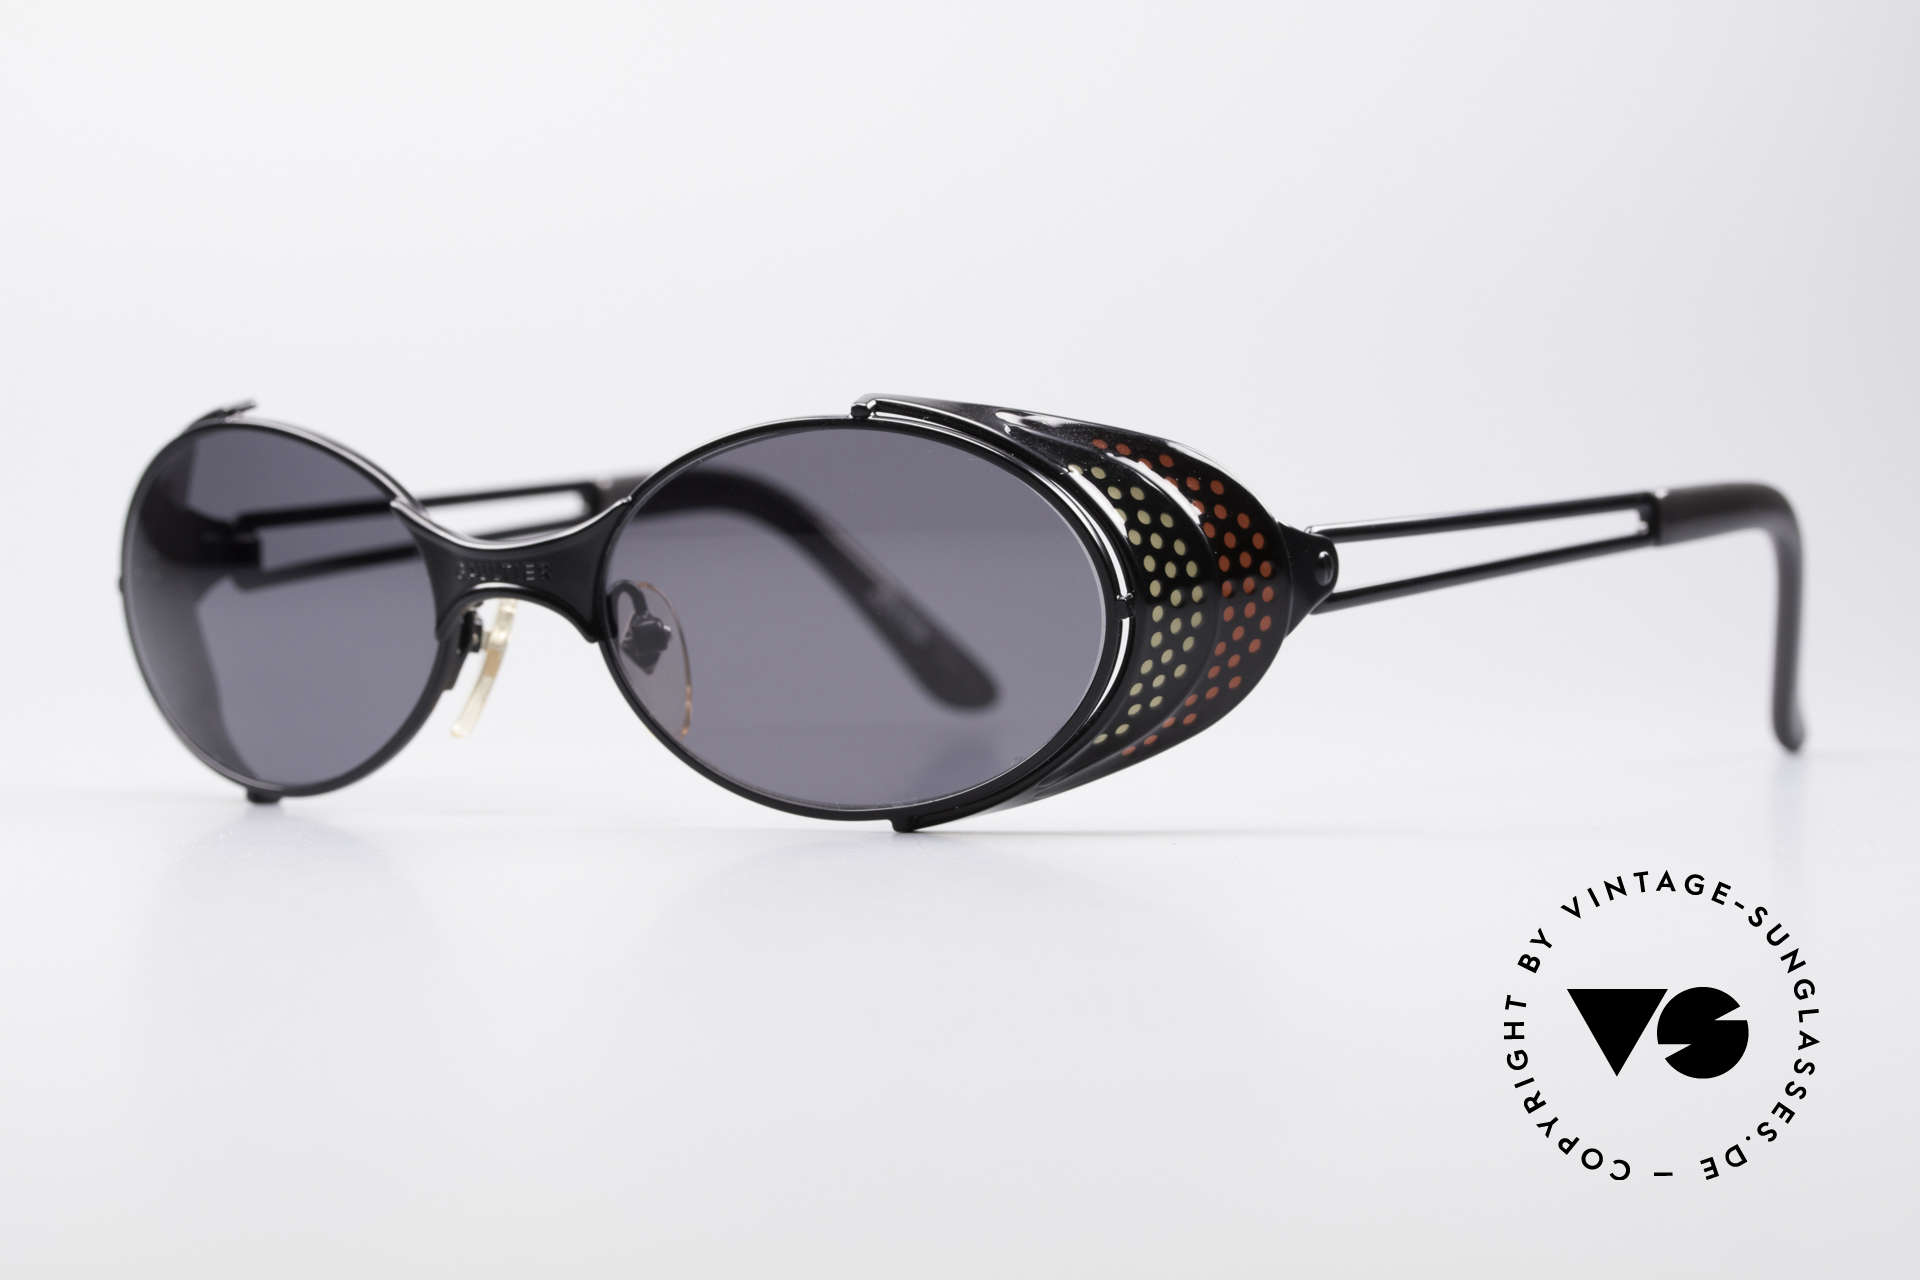 """Jean Paul Gaultier 56-7109 JPG Steampunk Sunglasses, many very interesting """"retro-futuristic"""" frame elements, Made for Men and Women"""